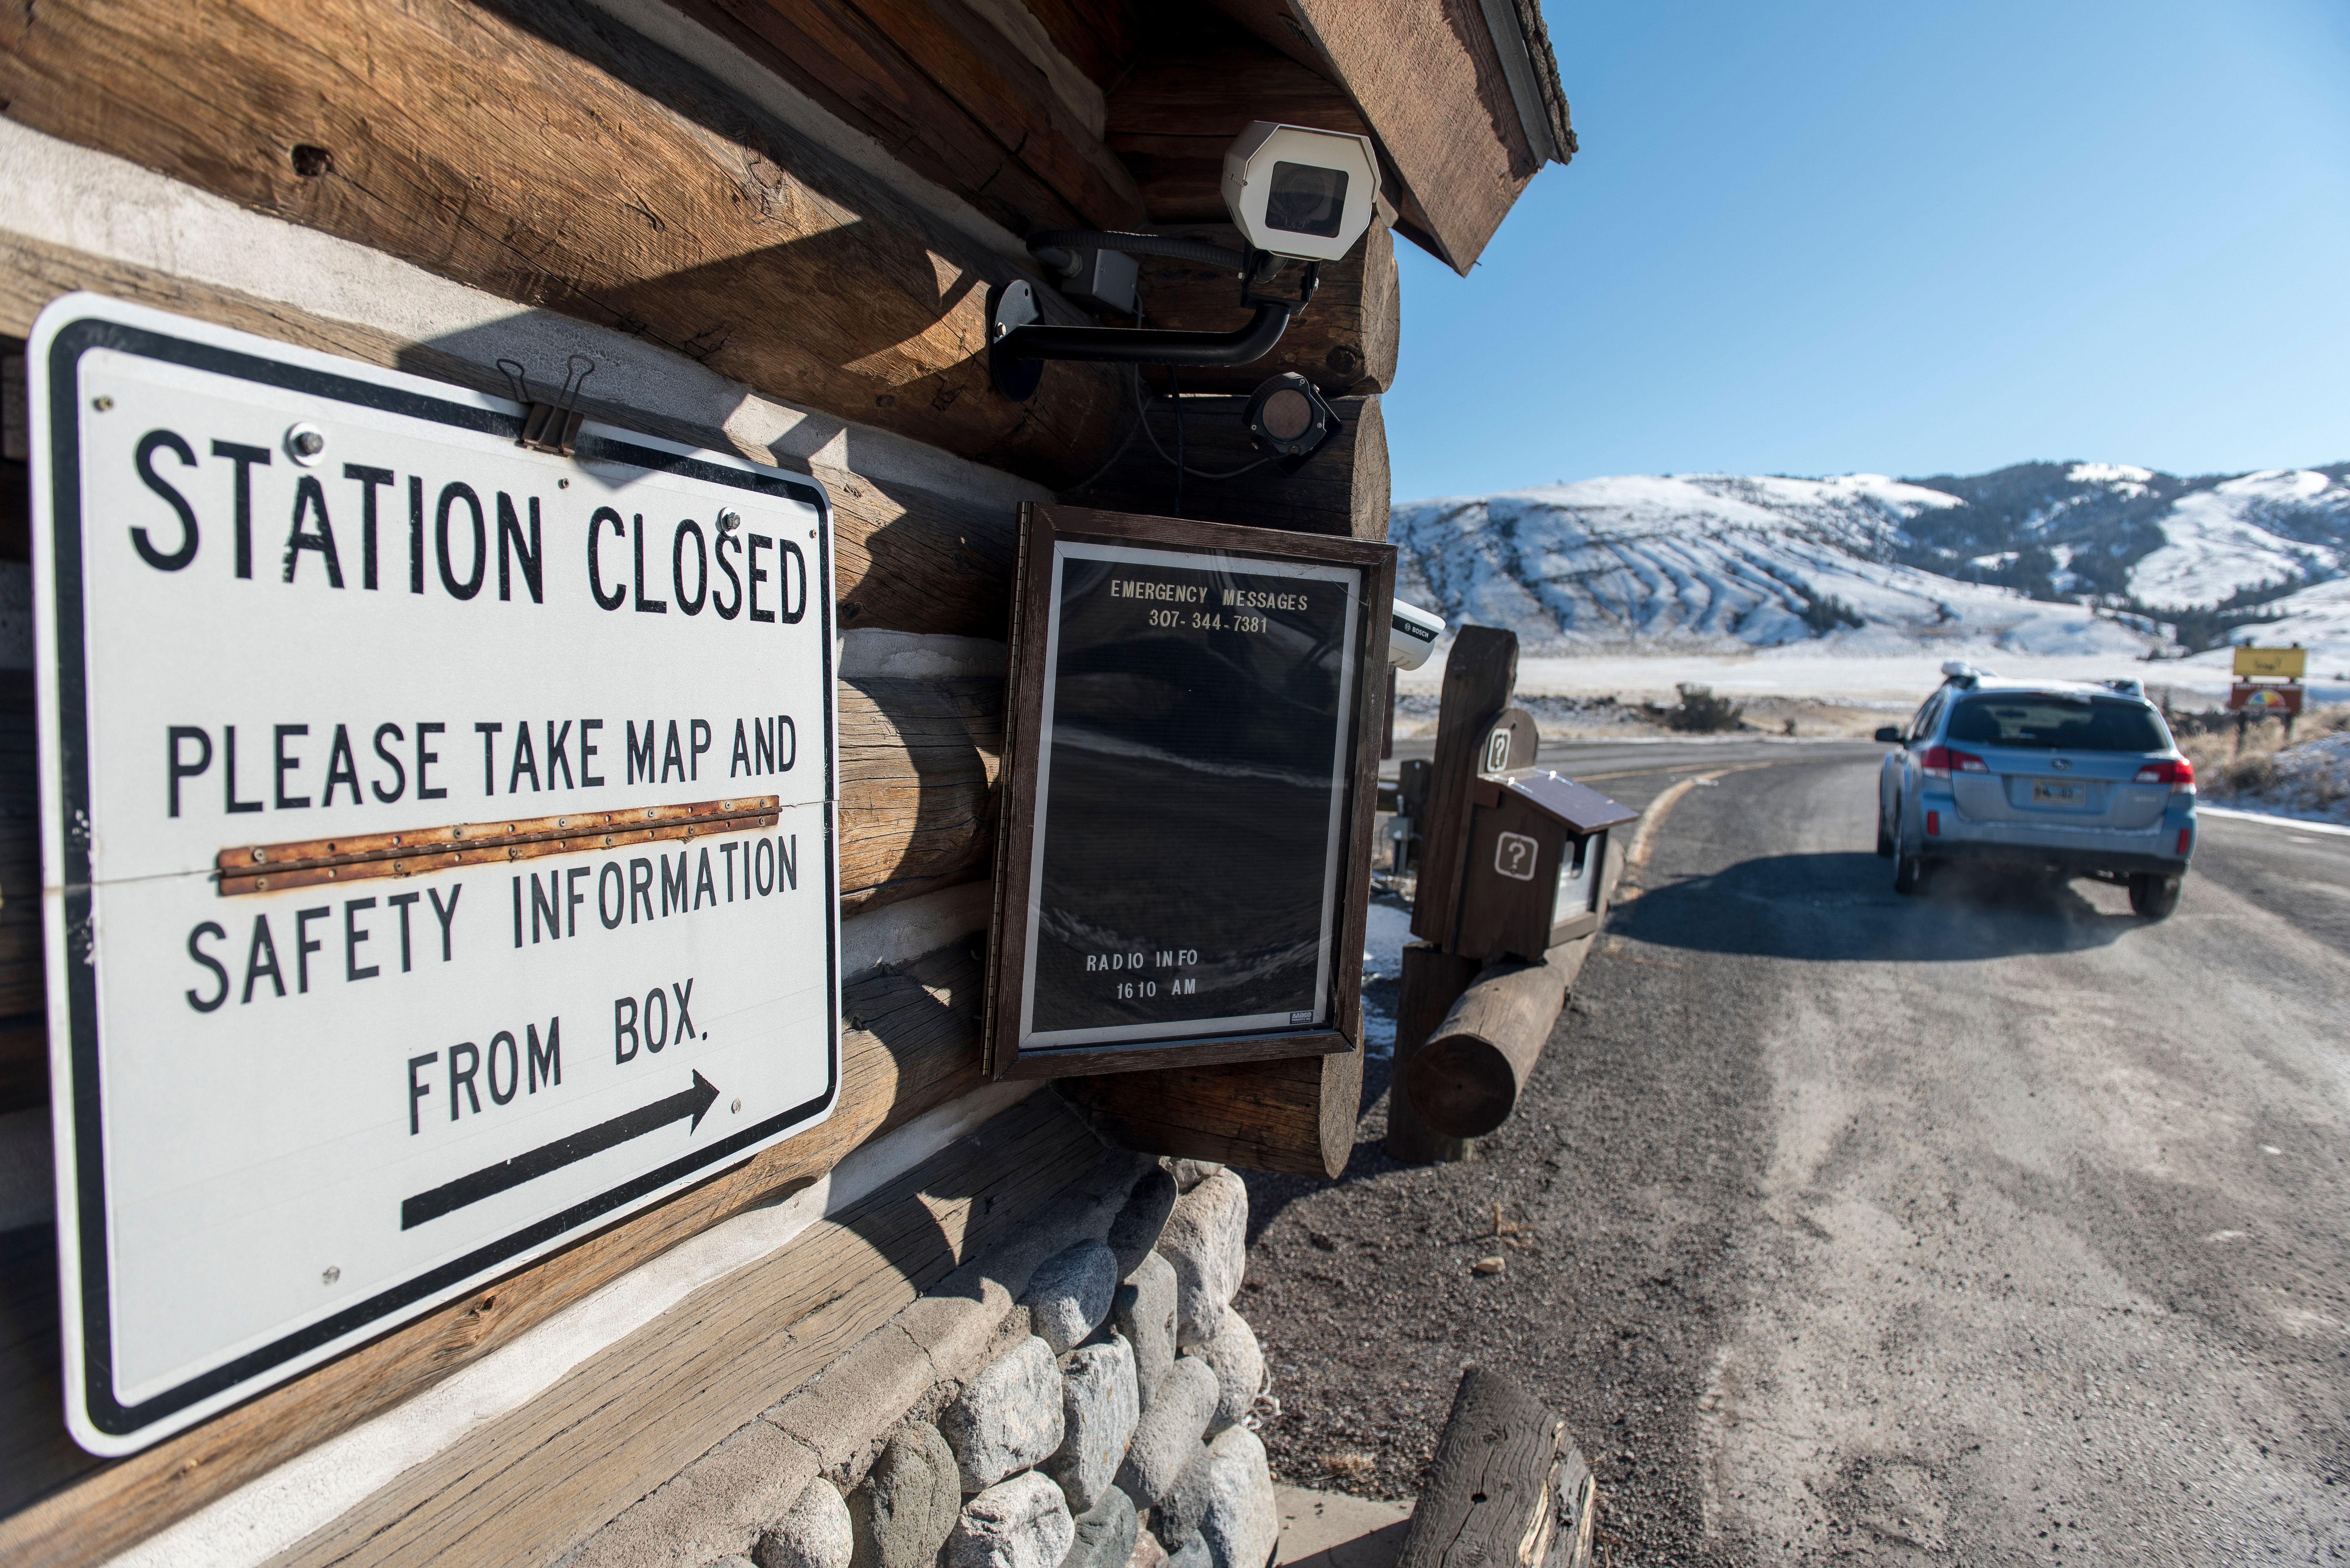 YELLOWSTONE NATIONAL PARK, MT - JANUARY 21:The entrance station to the north entrance  to Yellowstone National Park at Gardiner, MT is closed but visitors are allowed to enter the park with the understanding that there are no government services due to the government shutdown. (Photo by William Campbell/Corbis via Getty Images)